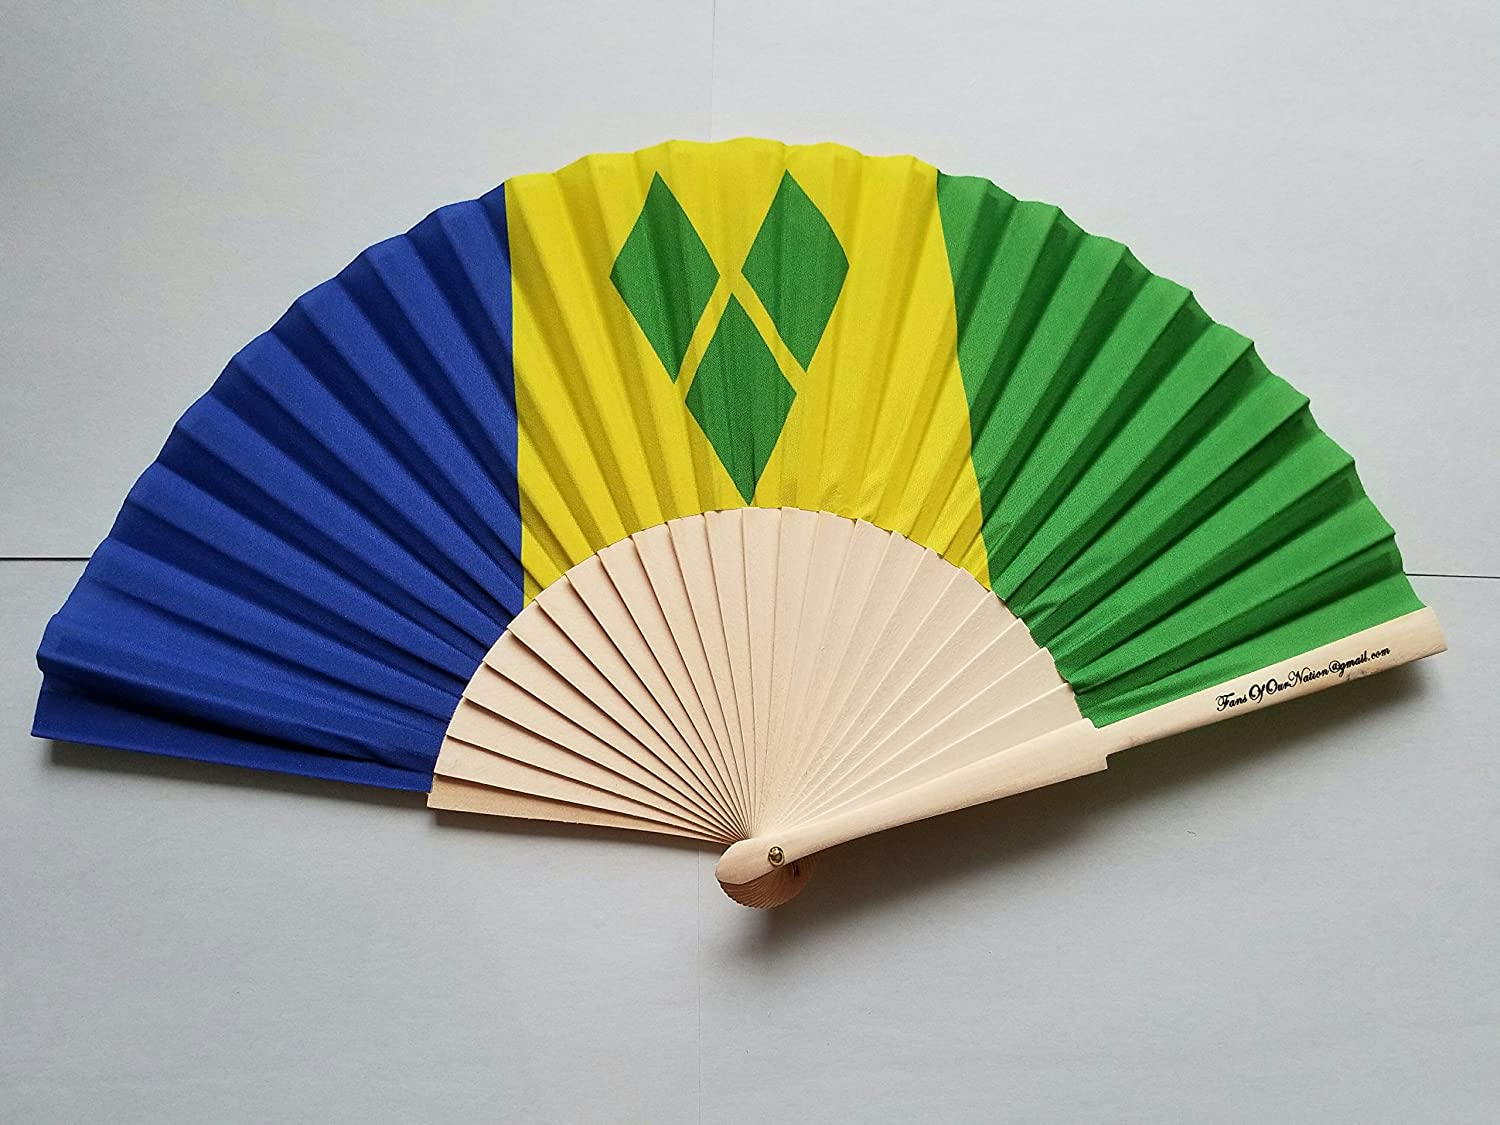 Fans Of Our Nation St Vincent and The Grenadines Flag Fabric Folding Hand Fan with Bamboo Handle